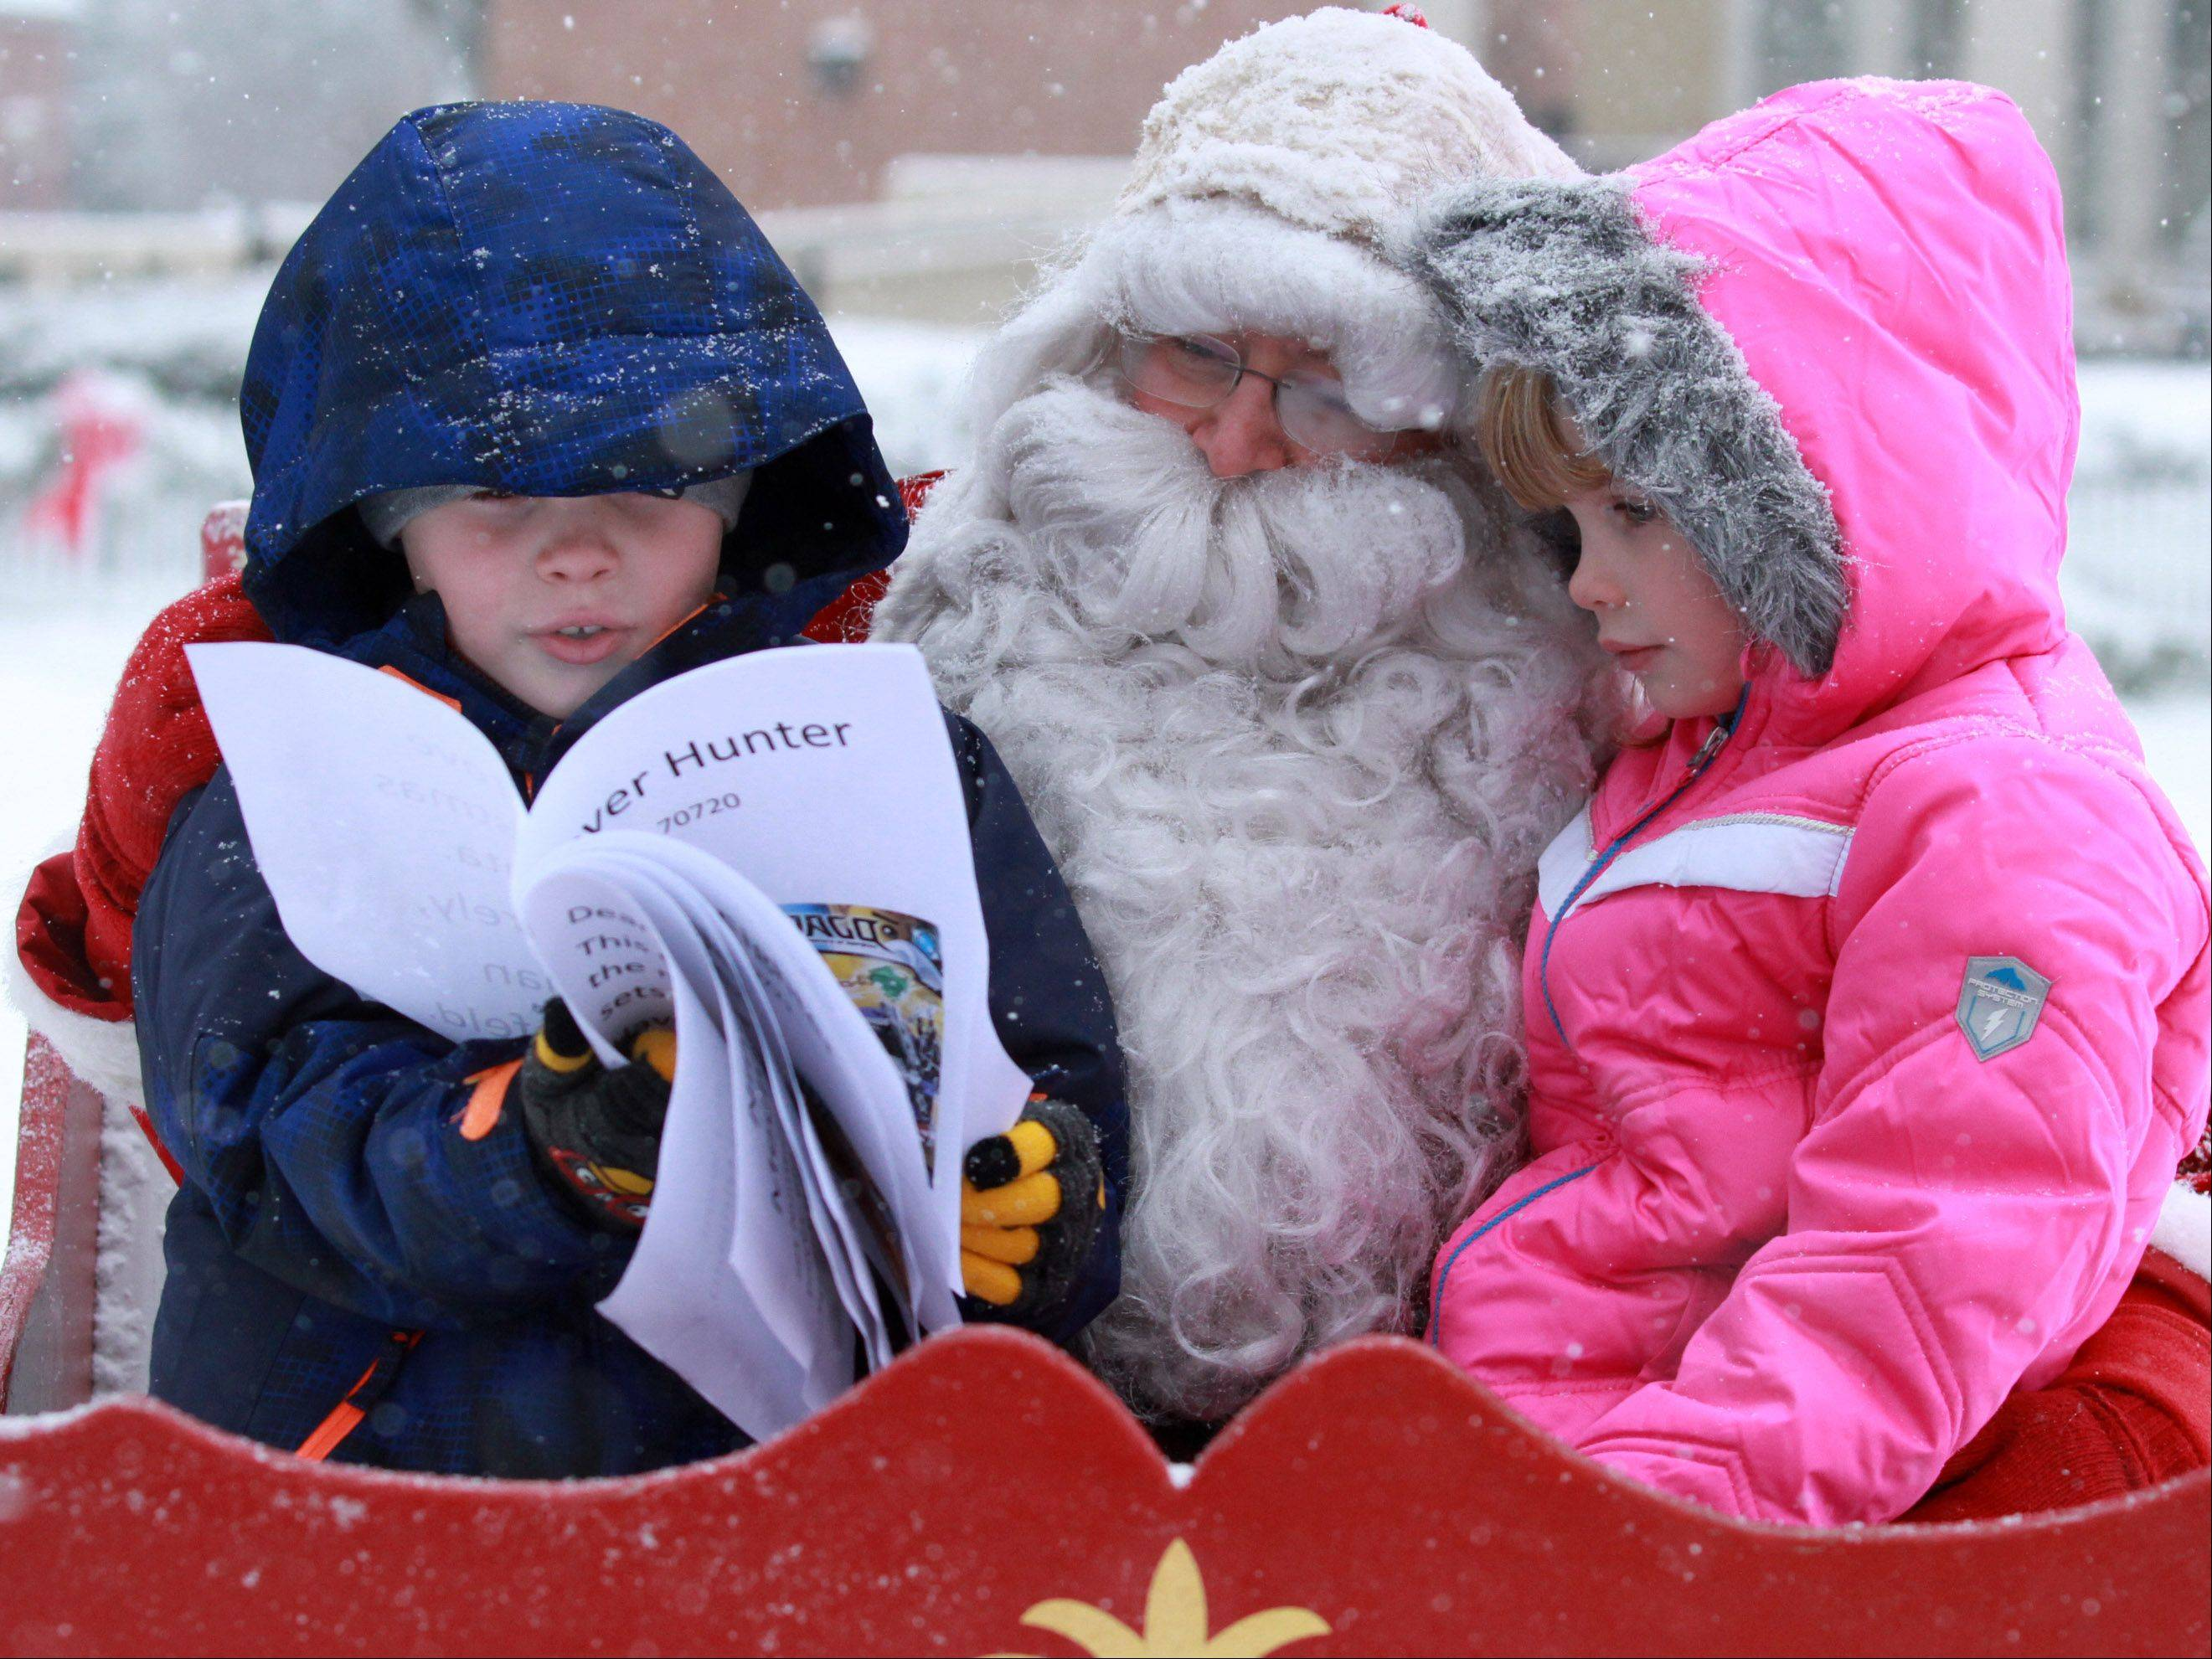 Eight-year-old Carson Nemuras made a Christmas wish list with graphics to show as he and his sister, Abbie Nemuras, 7, both of Libertyville, visit with Santa Claus in Cook Park during Dickens of a Holiday Festival on Saturday in Libertyville.